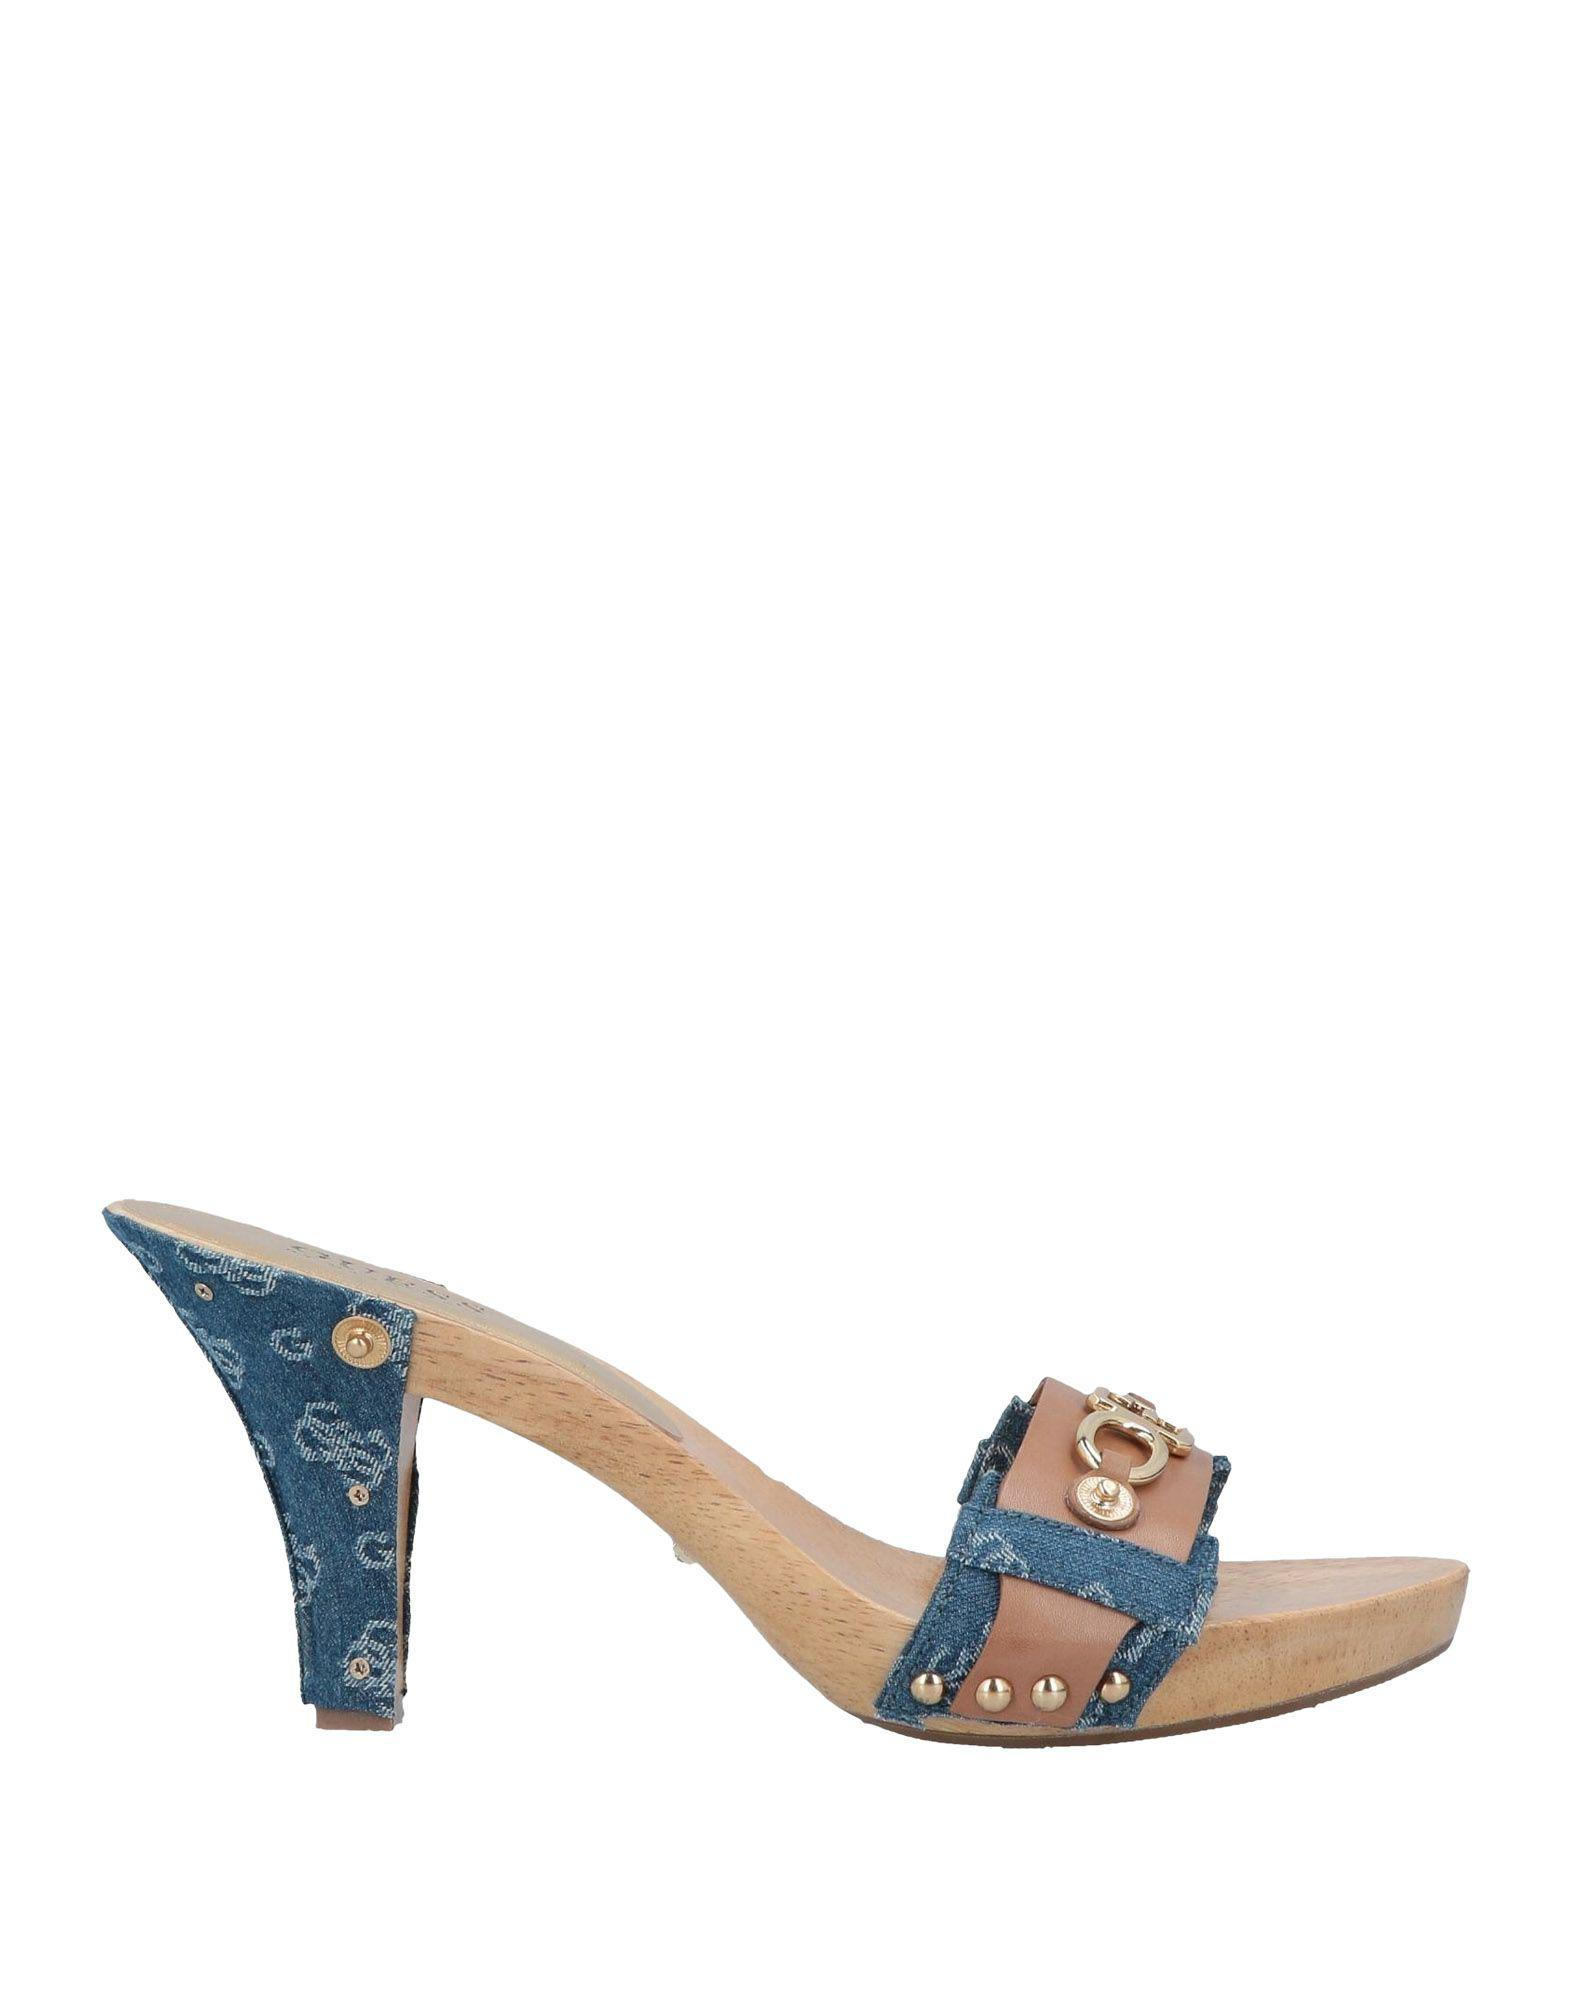 72cde466e162 Lyst - Guess Sandals in Blue